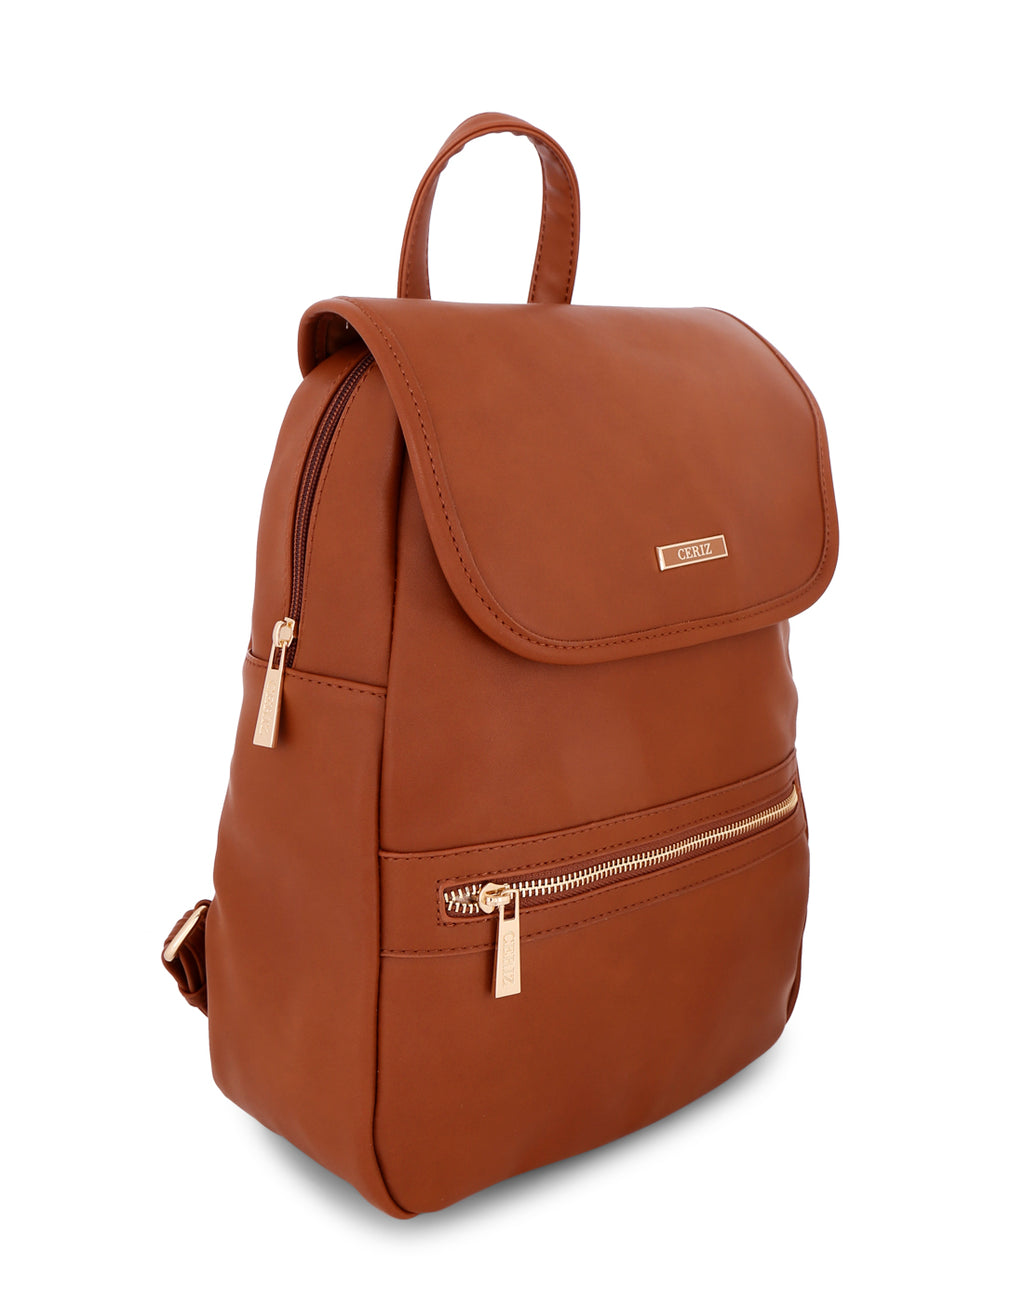 Parthenia Chic Tan Backpack